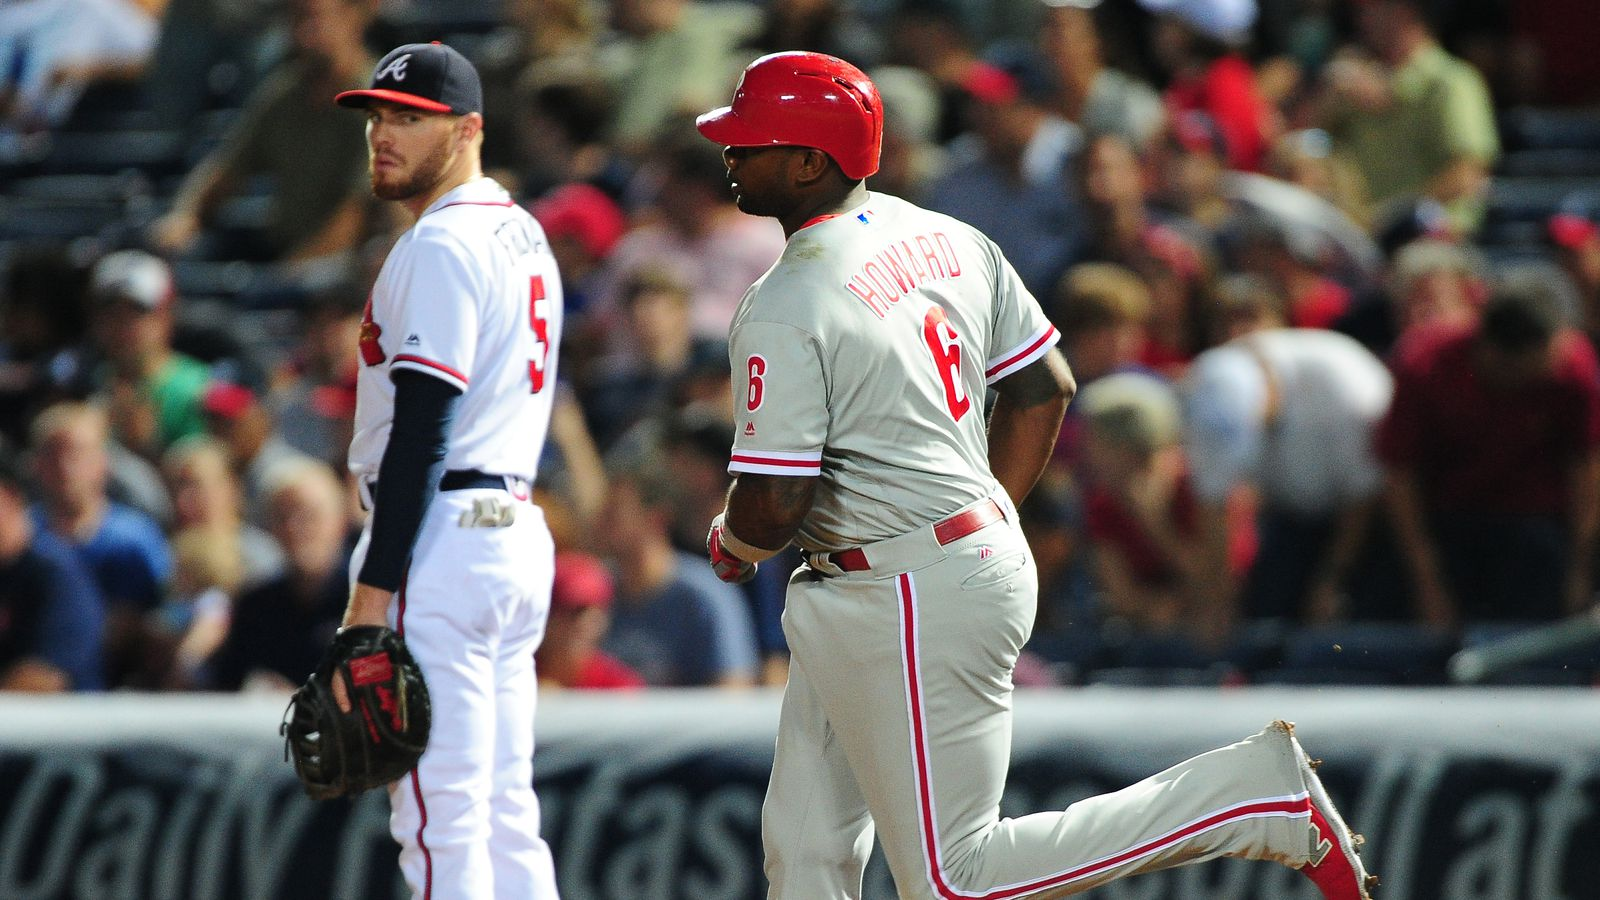 Interminable Rains of Unfortunate Timing: Braves 7,  Phillies 6 - The Good Phight